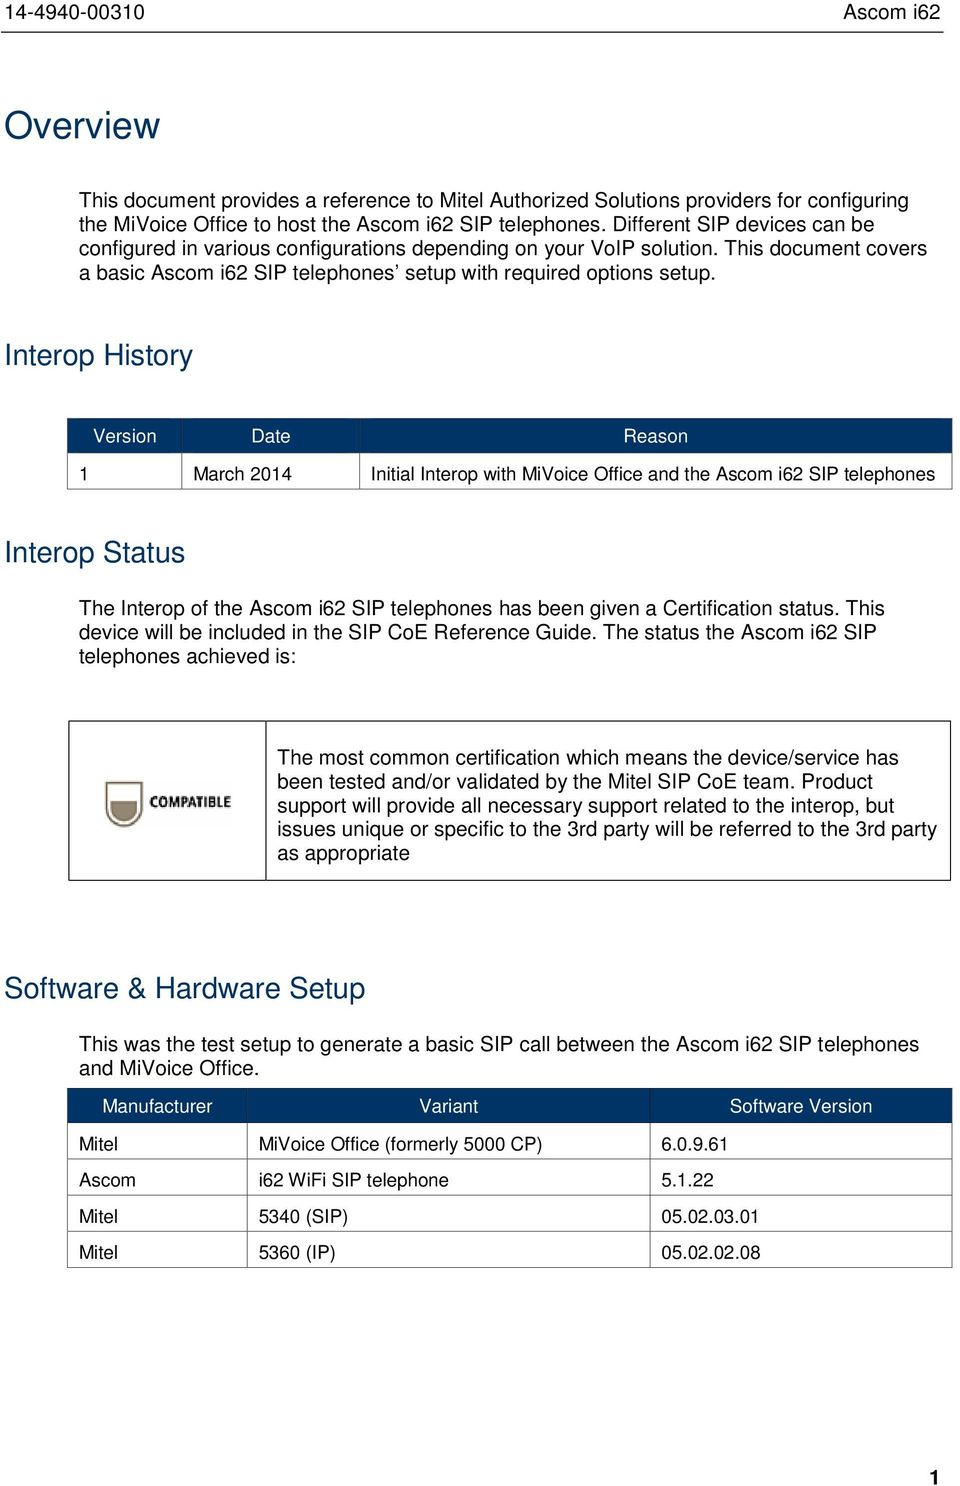 Interop History Version Date Reason 1 March 2014 Initial Interop with MiVoice Office and the Ascom i62 SIP telephones Interop Status The Interop of the Ascom i62 SIP telephones has been given a